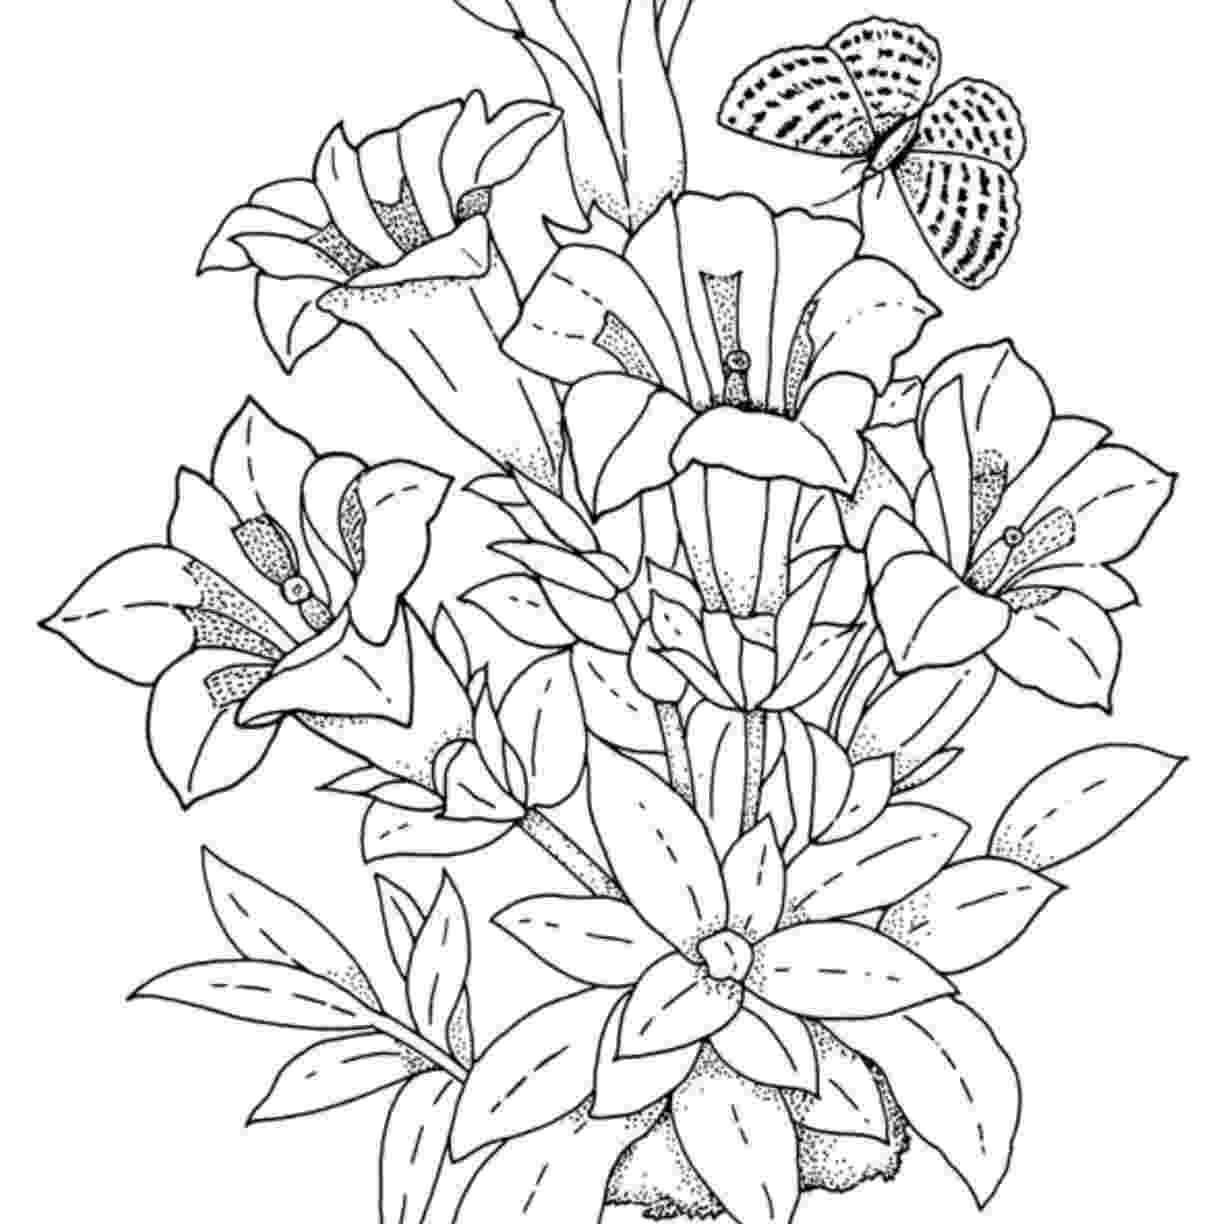 hibiscus coloring pages free printable hibiscus coloring pages for kids coloring pages hibiscus